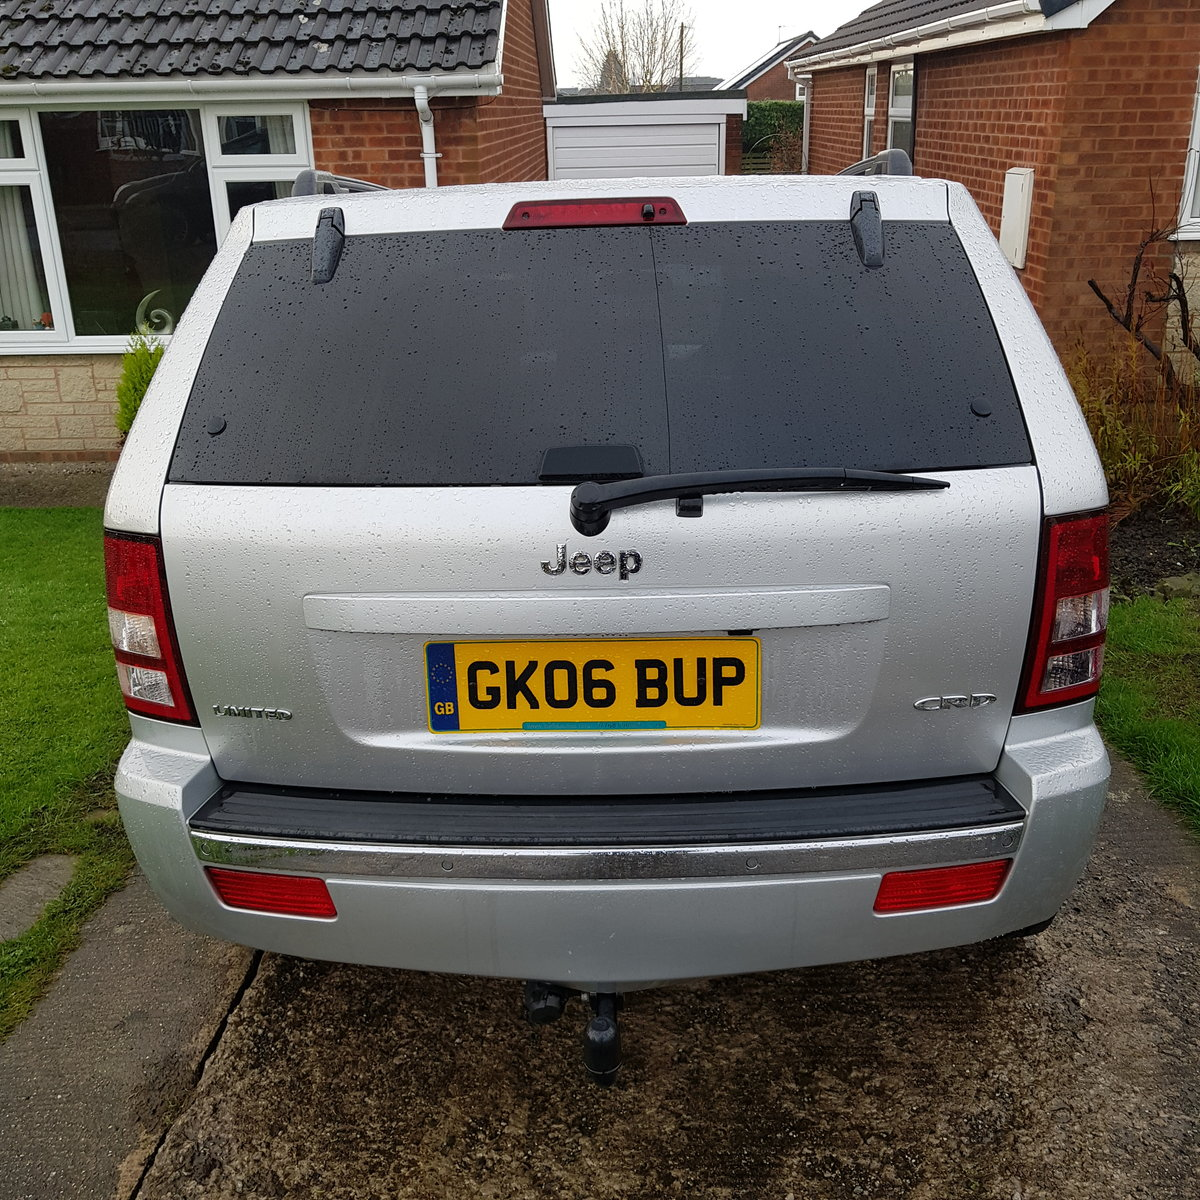 2006 Grand cherokee*new wheels/tyres*long mot*l For Sale (picture 2 of 6)